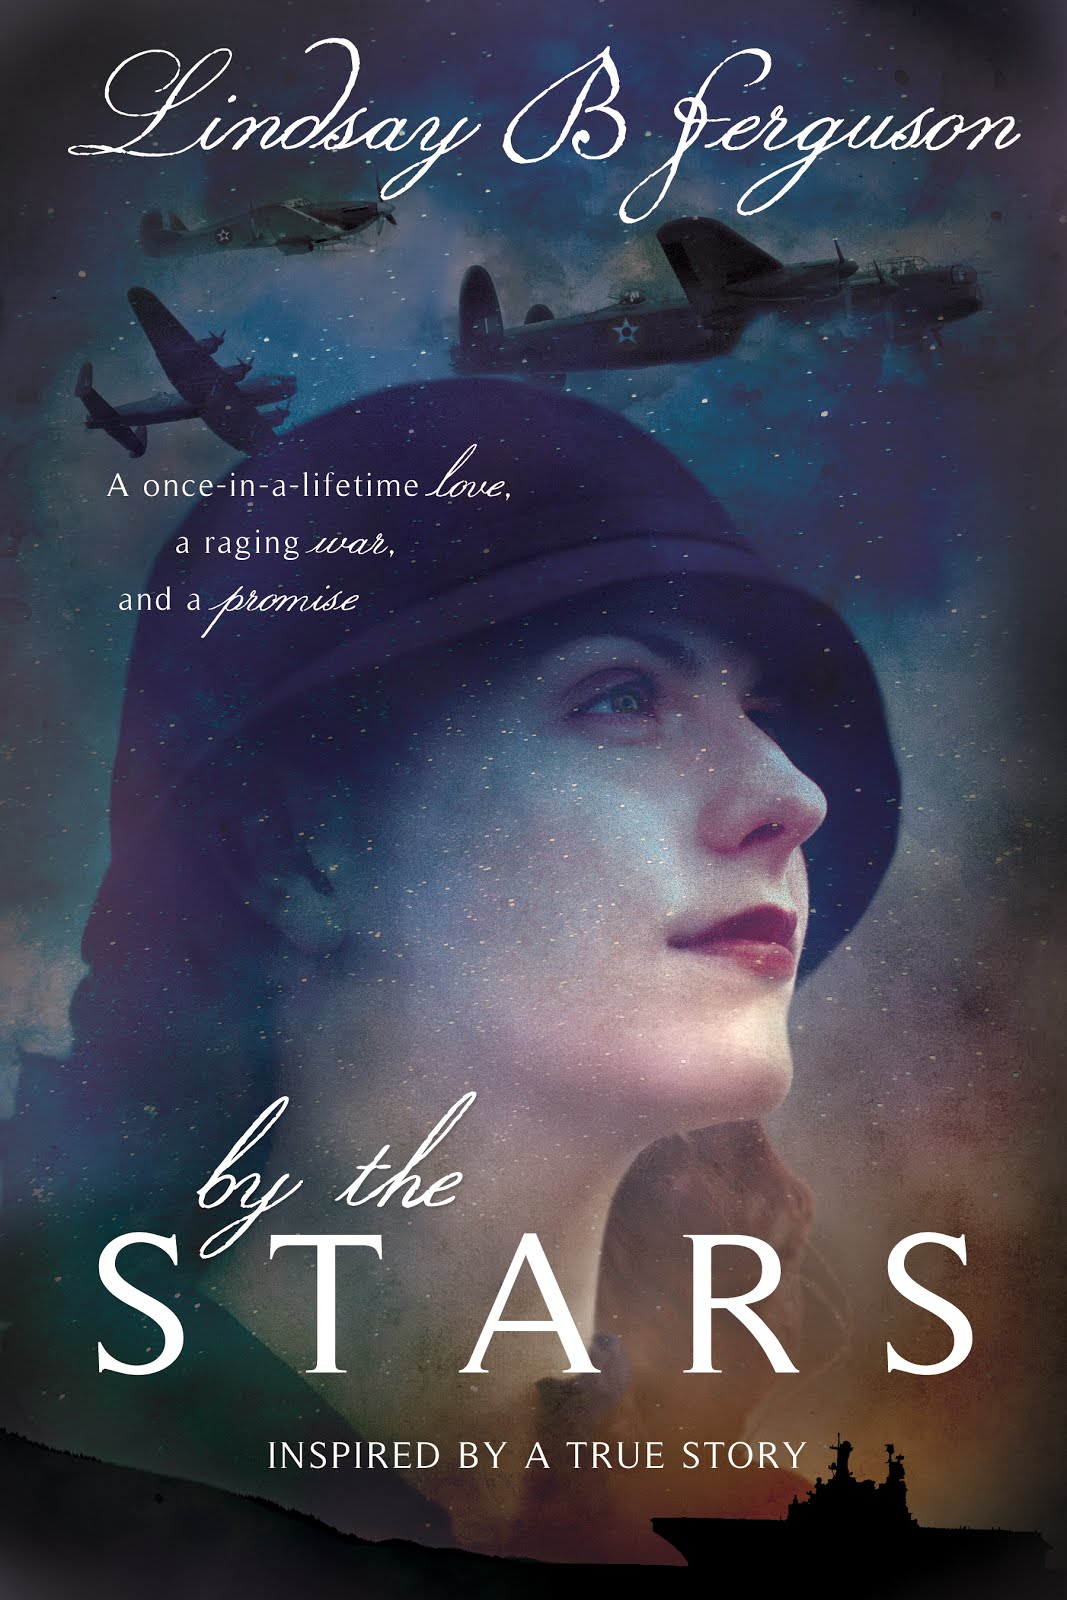 My upcoming novel, By the Stars, is set to be released March 8, 2016